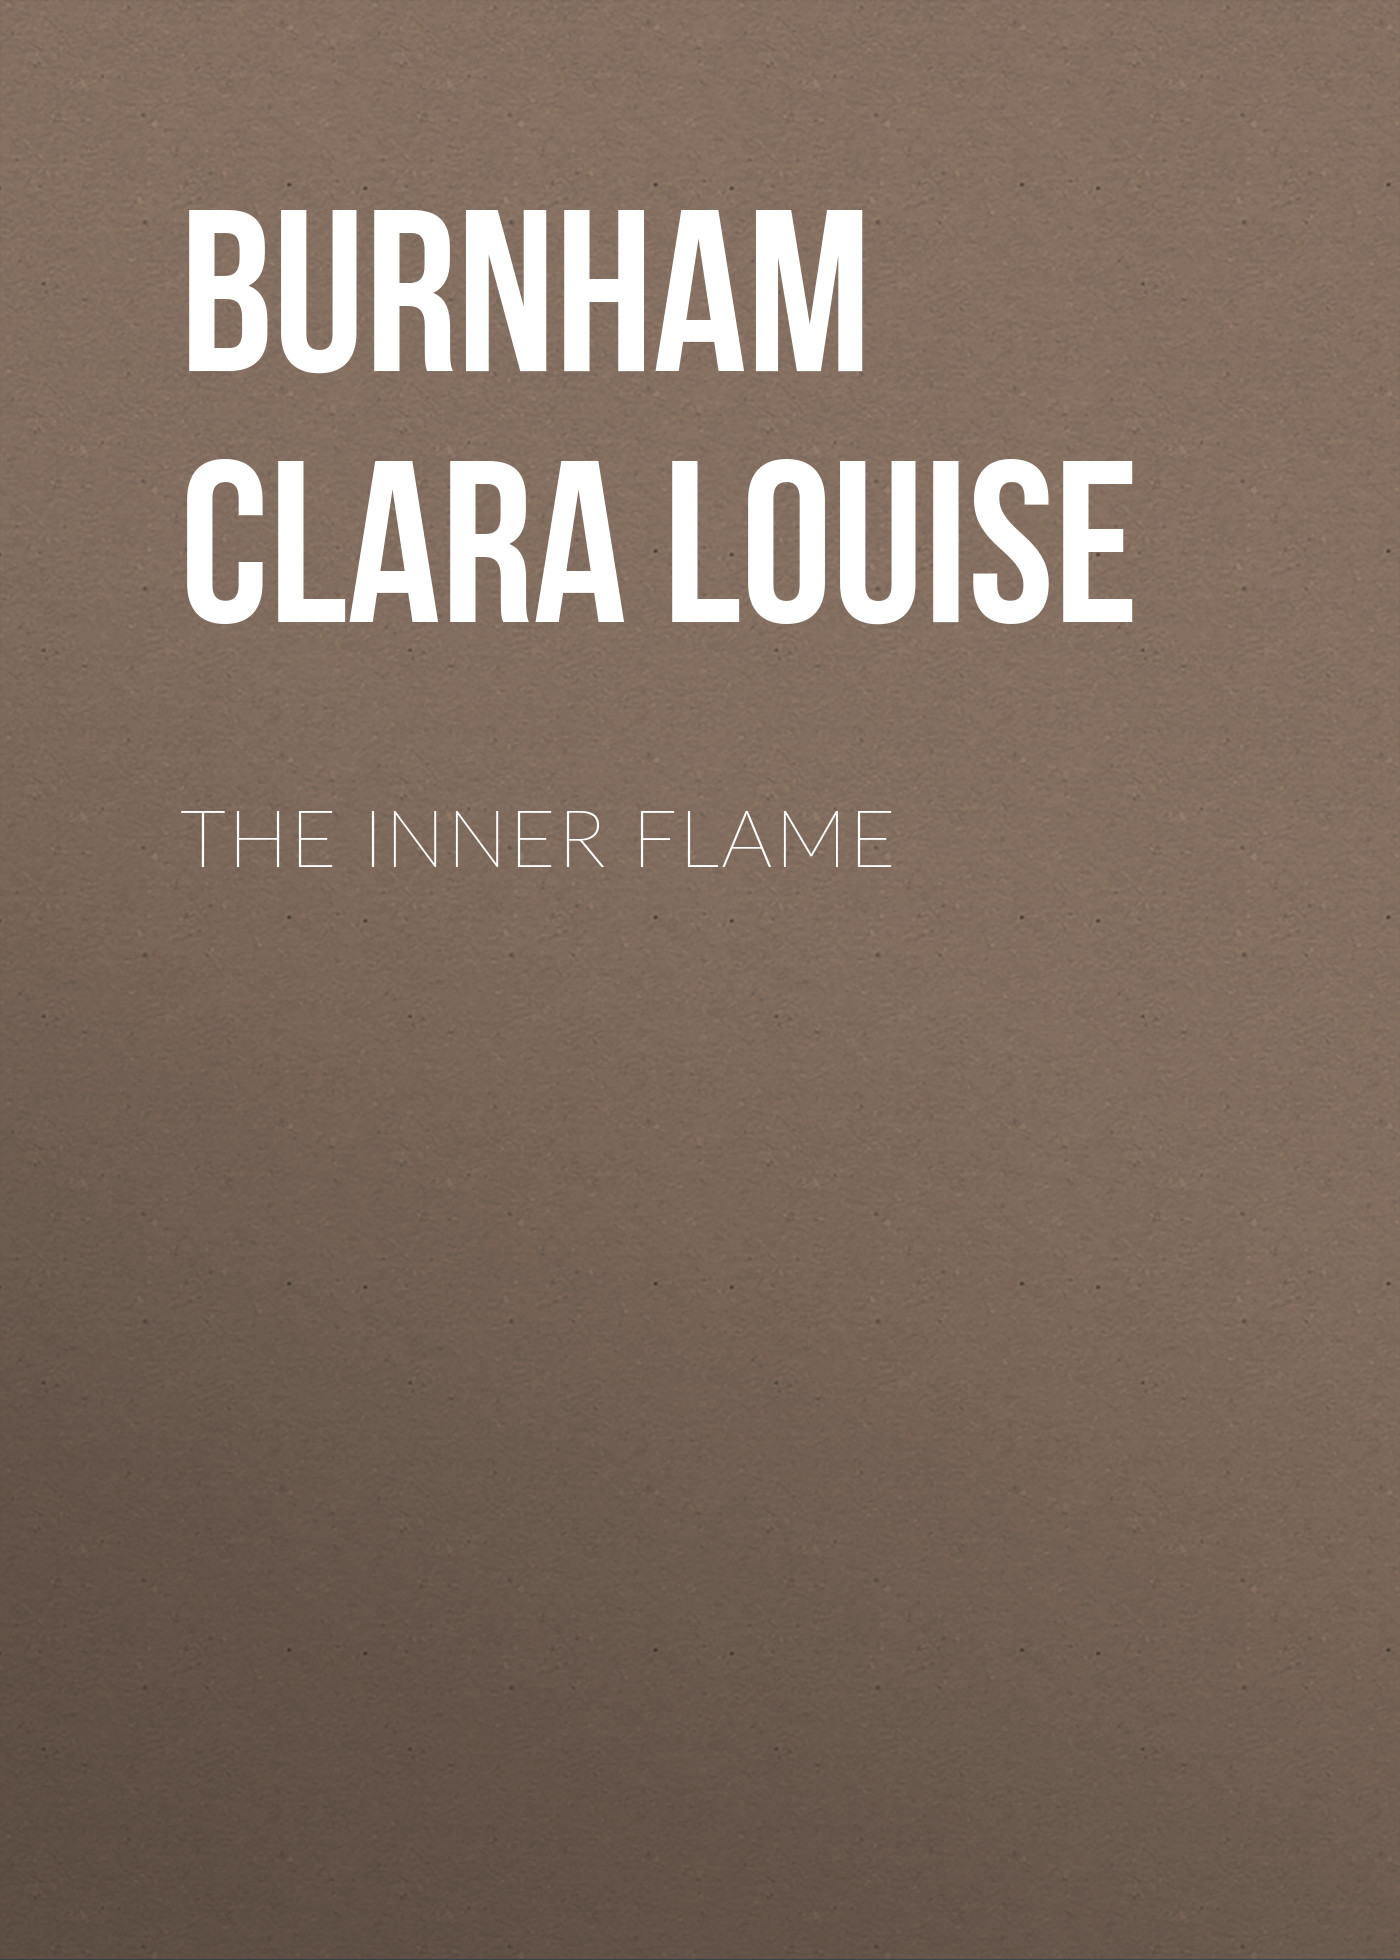 Фото - Burnham Clara Louise The Inner Flame burnham clara louise instead of the thorn